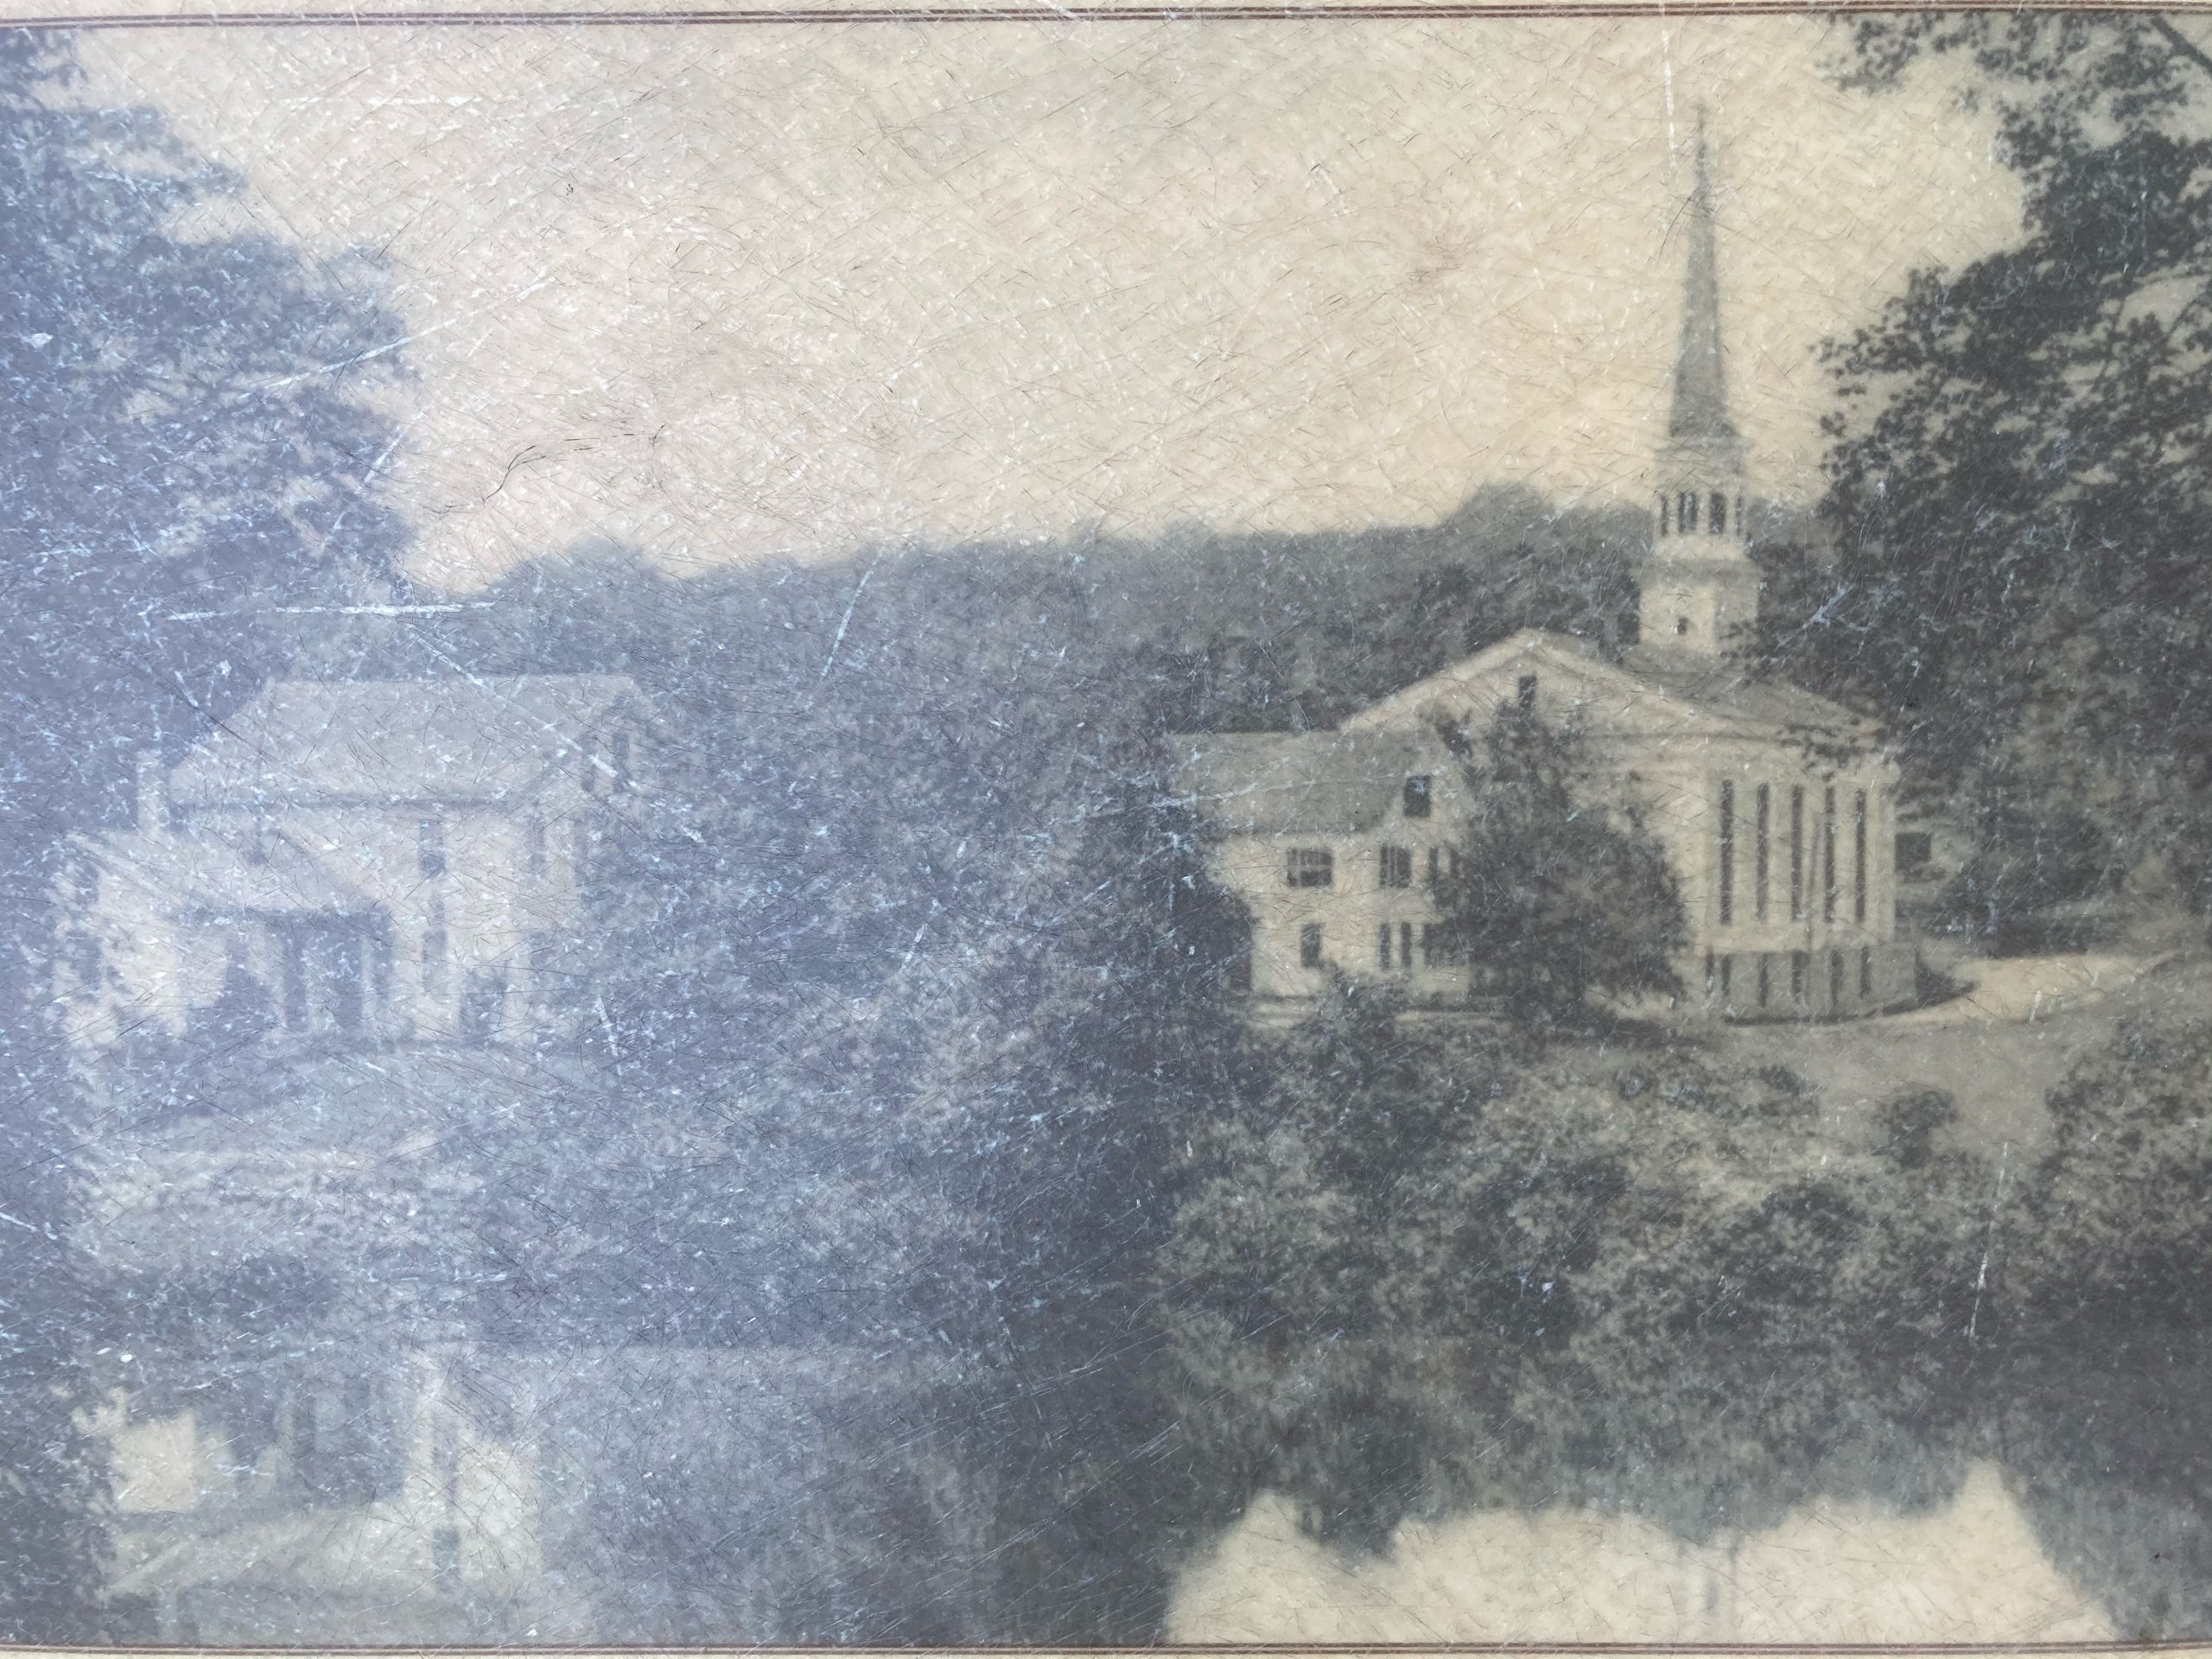 Mill Brook Park in the 1900s